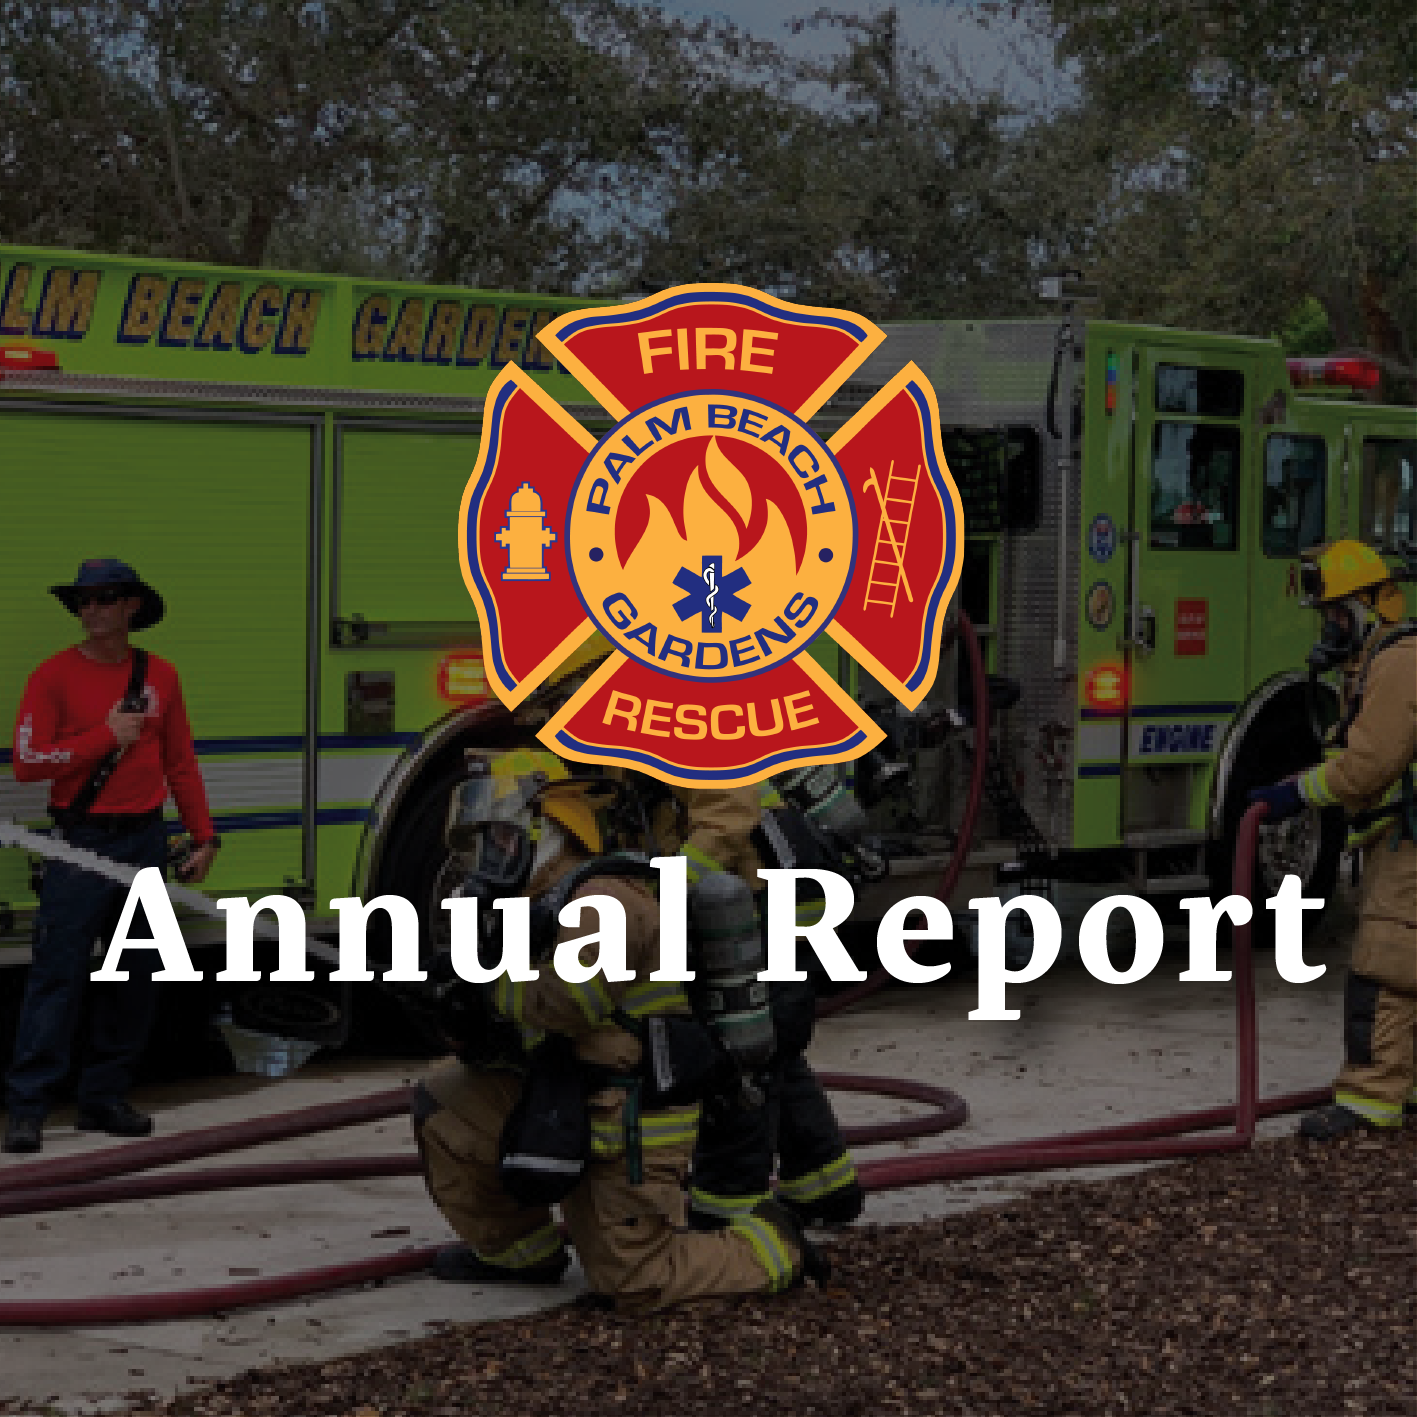 Palm Beach Gardens Fire Rescue. Annual Report.